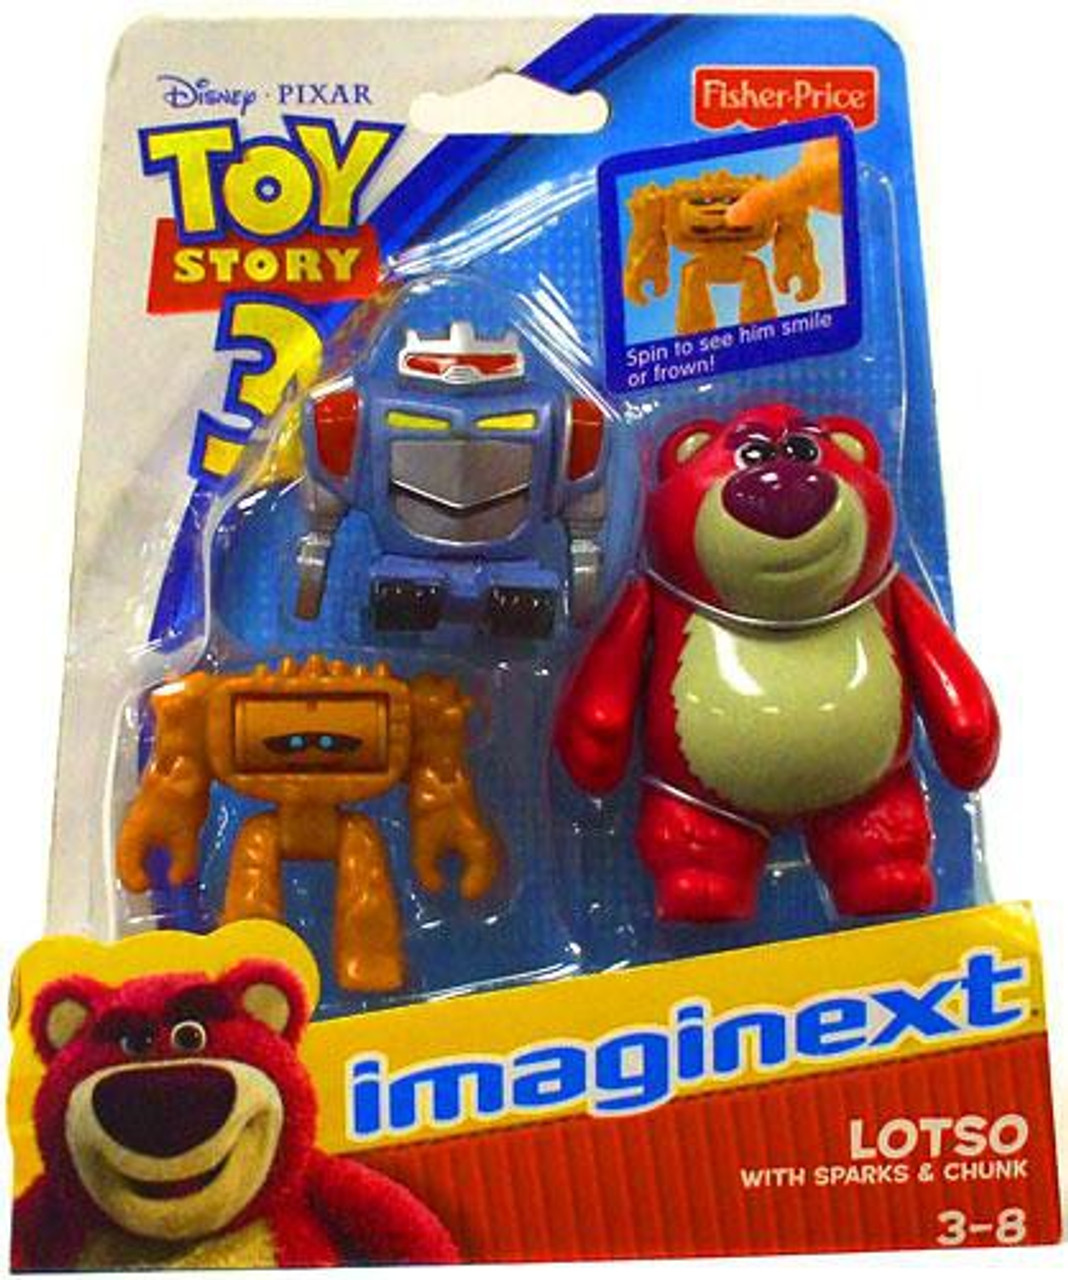 Fisher Price Toy Story 3 Imaginext Lotso, Sparks & Chunk 3-Inch Mini Figures